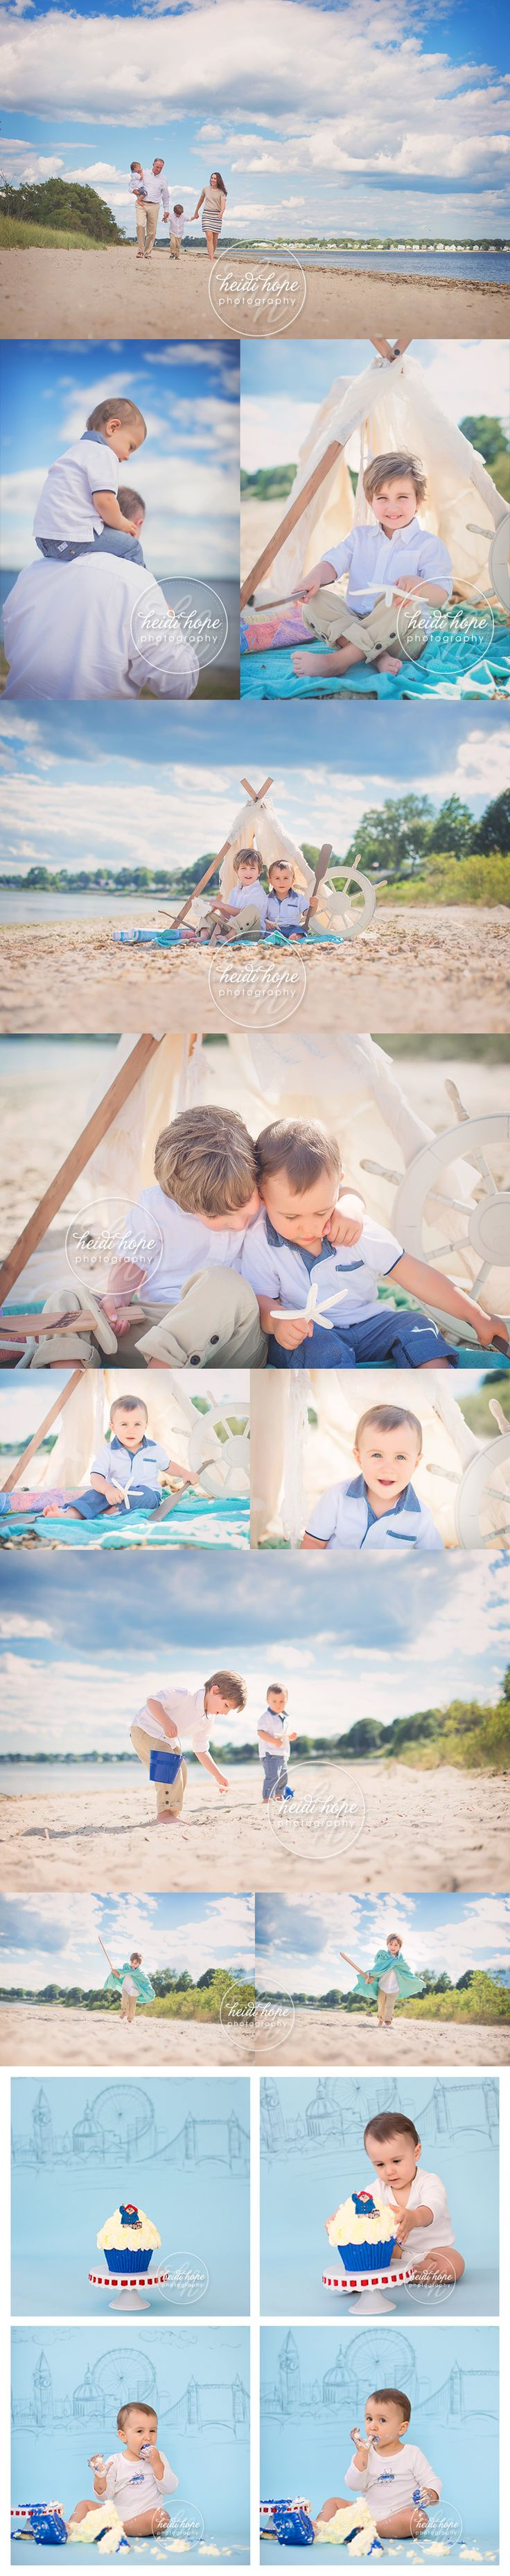 Holy Cow!  Those pirate beach photos!!  What I wouldn't give to do a session like that for my boys! outdoor family beach session with paddington bear cakesmash for little boys Heidi Hope Photography